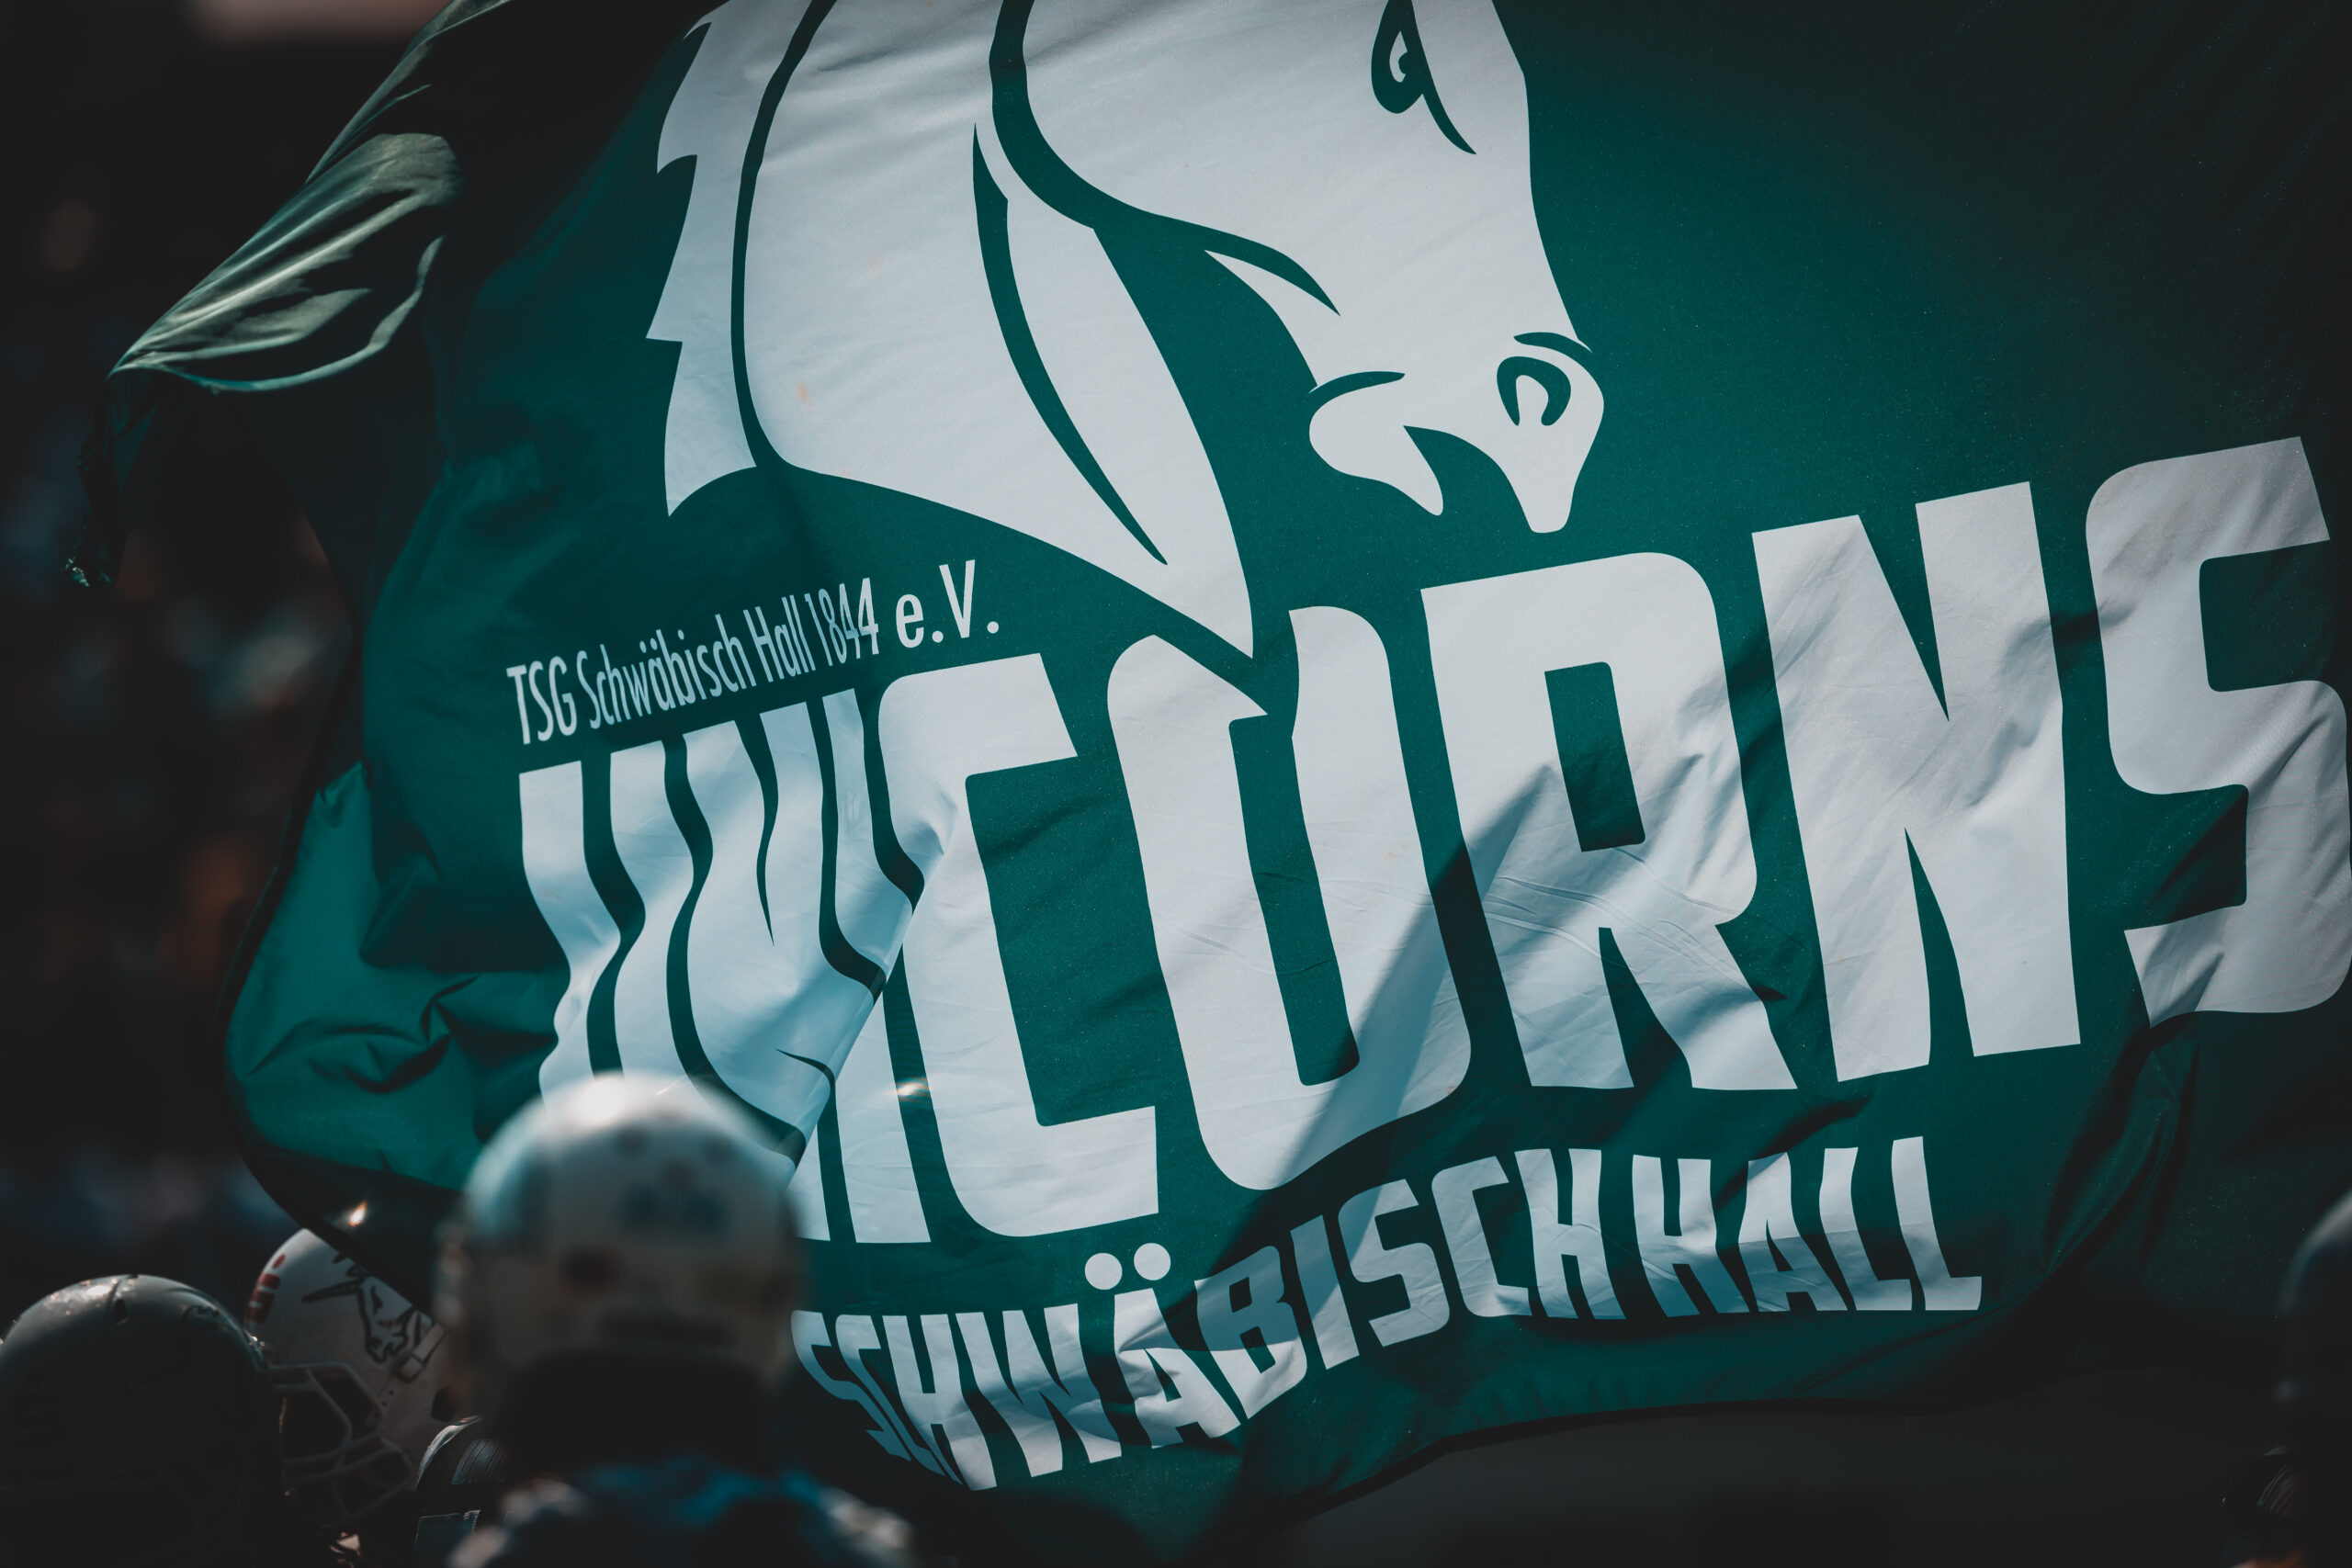 Schwaebisch Hall Unicorns gegen Marburg Mercenaries